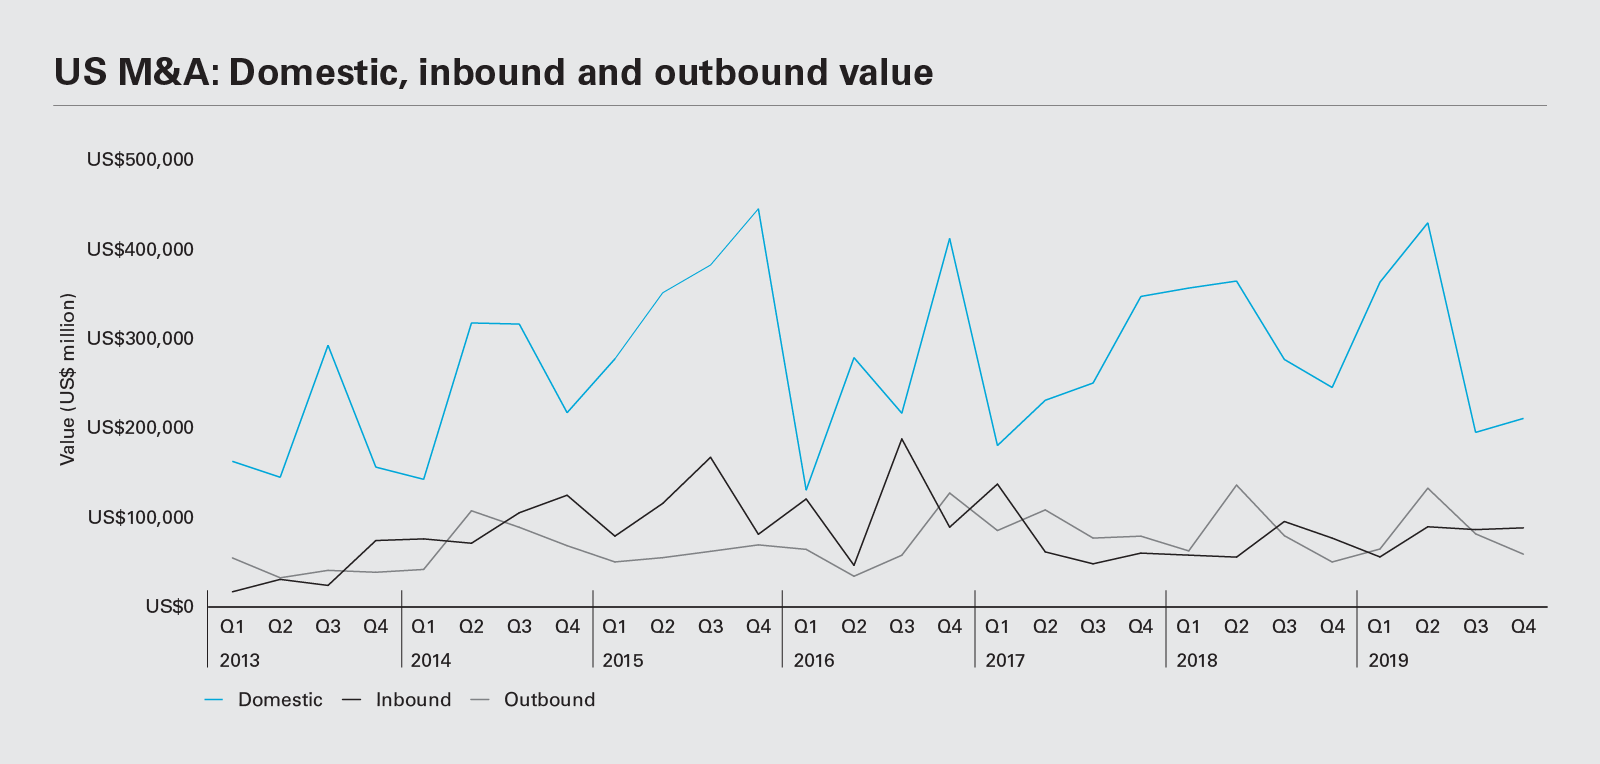 US M&A: Domestic, inbound and outbound value